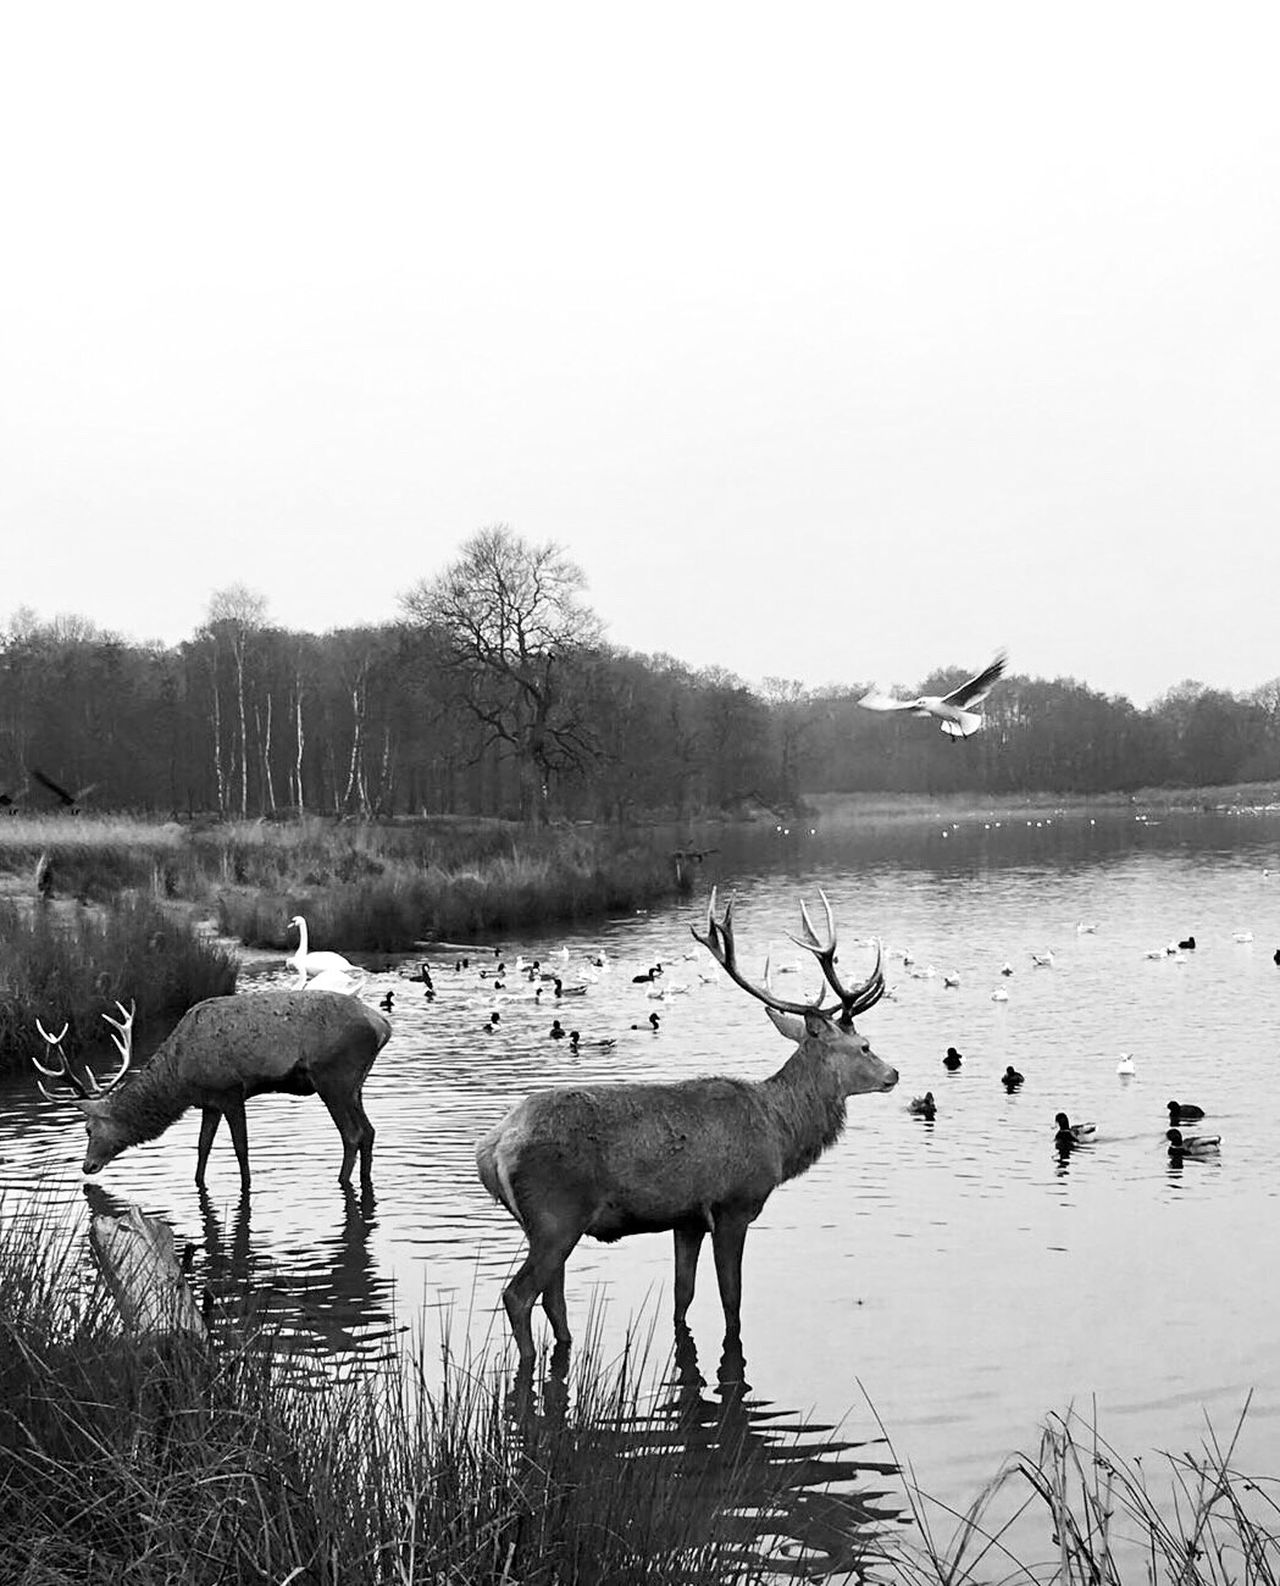 Richmond Park, London, UK Nature Animals In The Wild Animal Themes Tree Landscape Sky Beauty In Nature Outdoors Animal Wildlife Mammal No People Grass Day Large Group Of Animals Scenics Water Nature Reserve Stag Antler Richmond Park, London Wildlife & Nature Wildlife Photography Deer Beautiful Nature EyeEm Nature Lover